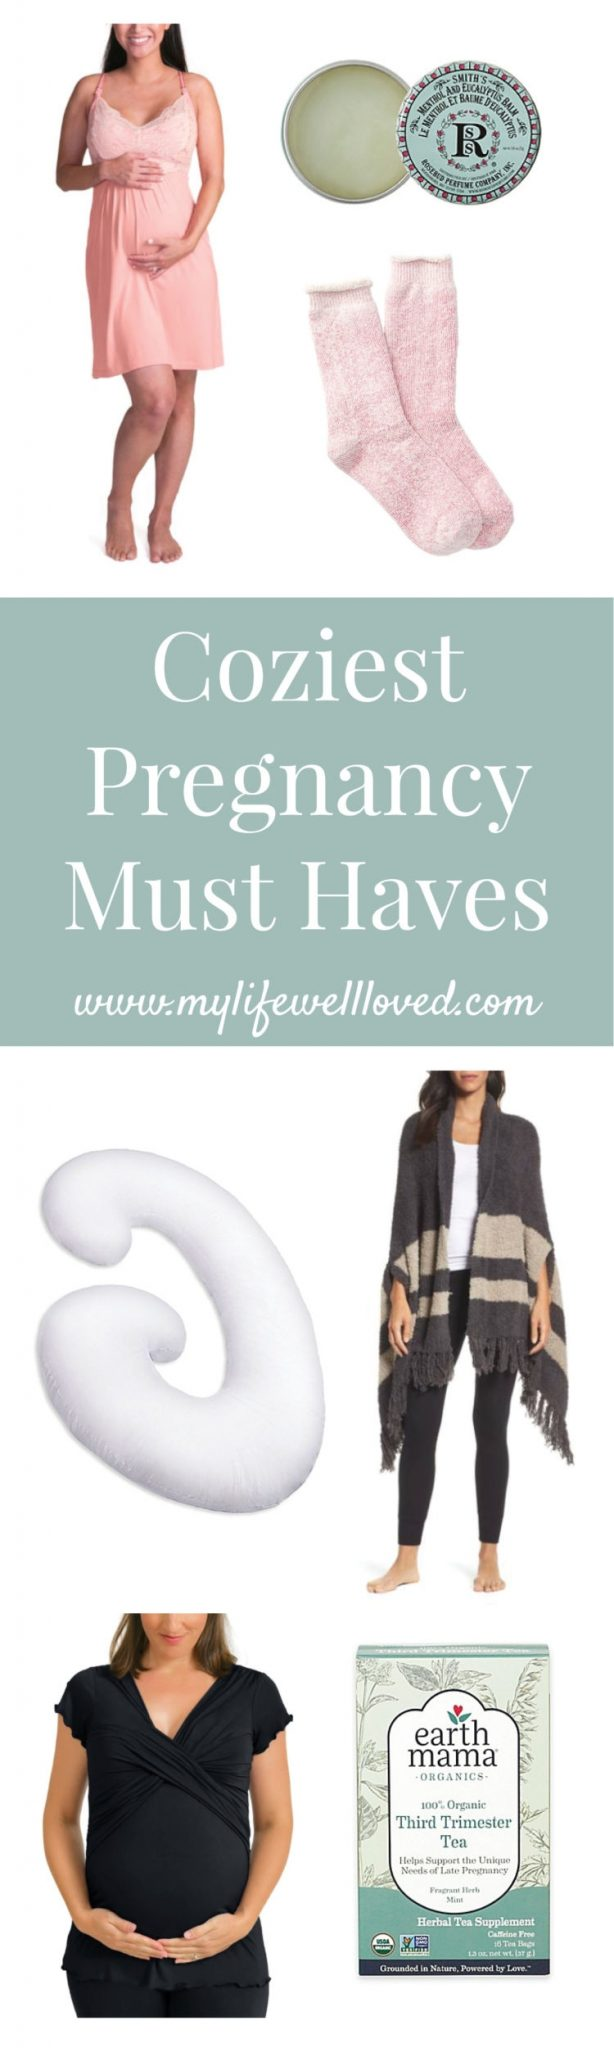 Coziest Pregnancy Must Haves from Alabama Health blogger Heather of MyLifeWellLoved.com // #secondtrimester #secondtrimester #pregnancy